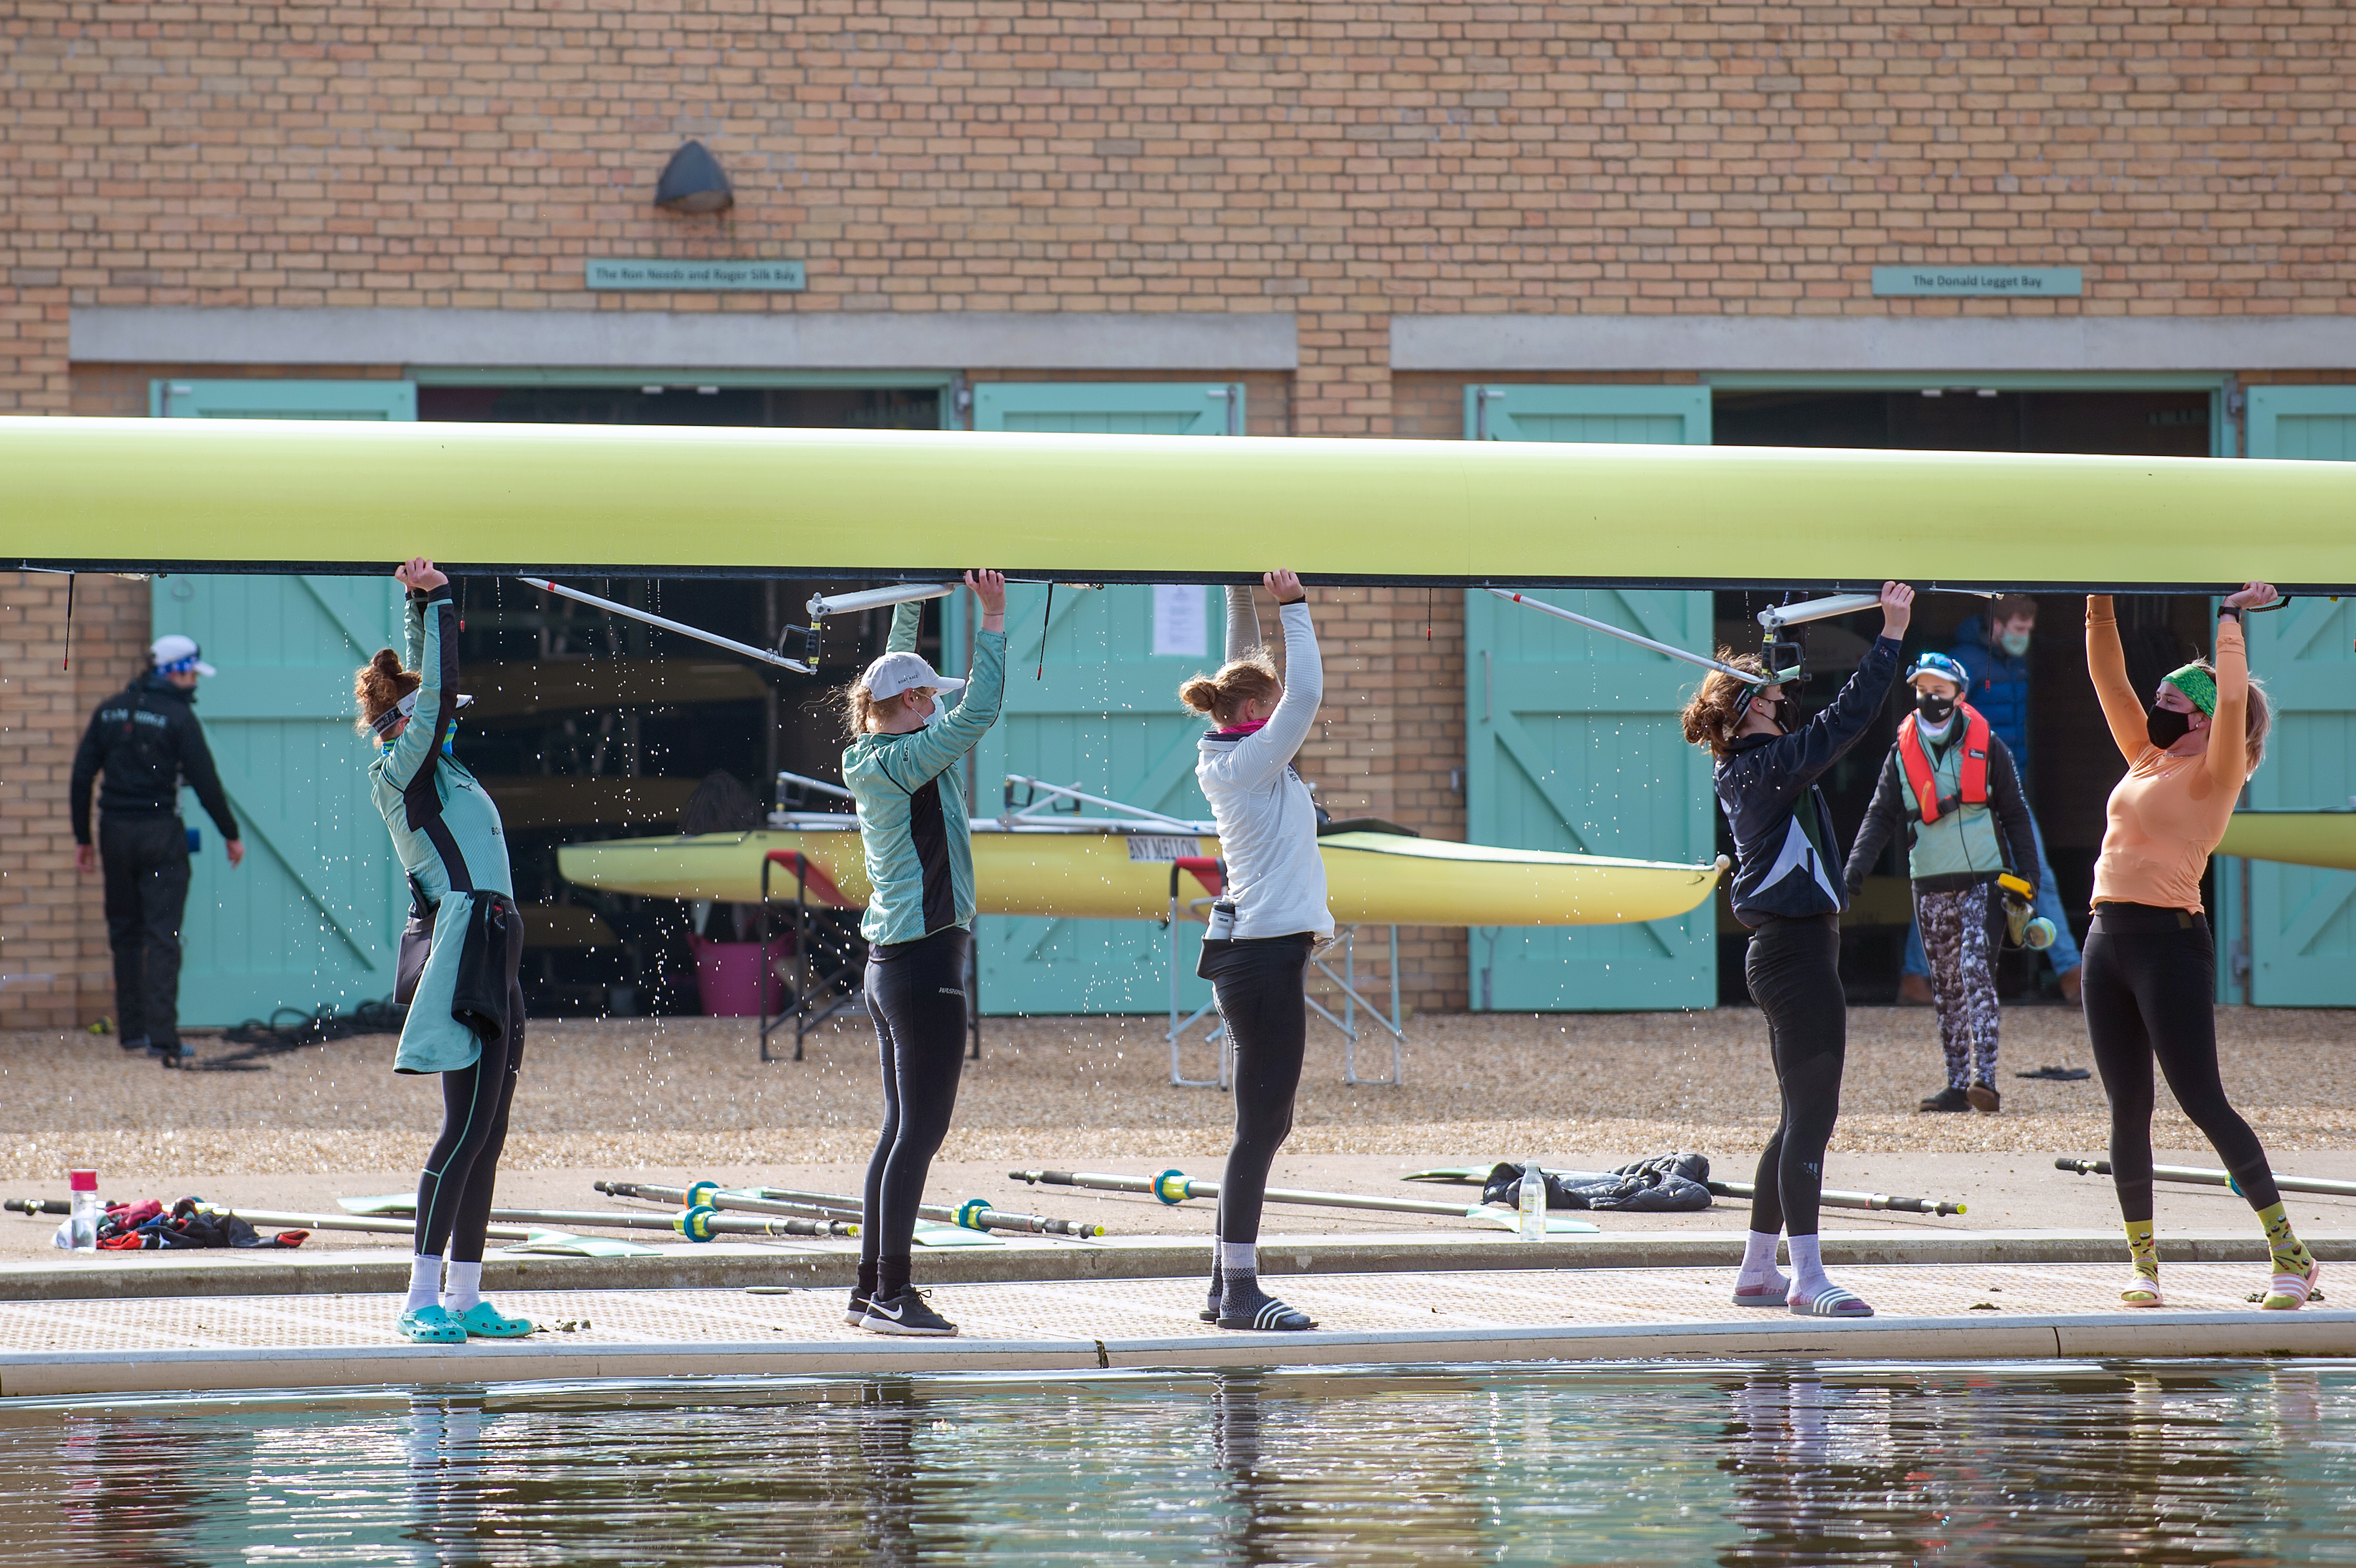 <p>Cambridge University Boat Club crews train on the River Great Ouse near Ely in Cambridgeshire for the first time, as the Blue boats of Cambridge University Boat Club can return to training on the water from today under the strict Covid guidelines for elite sport agreed with the UK government.</p>